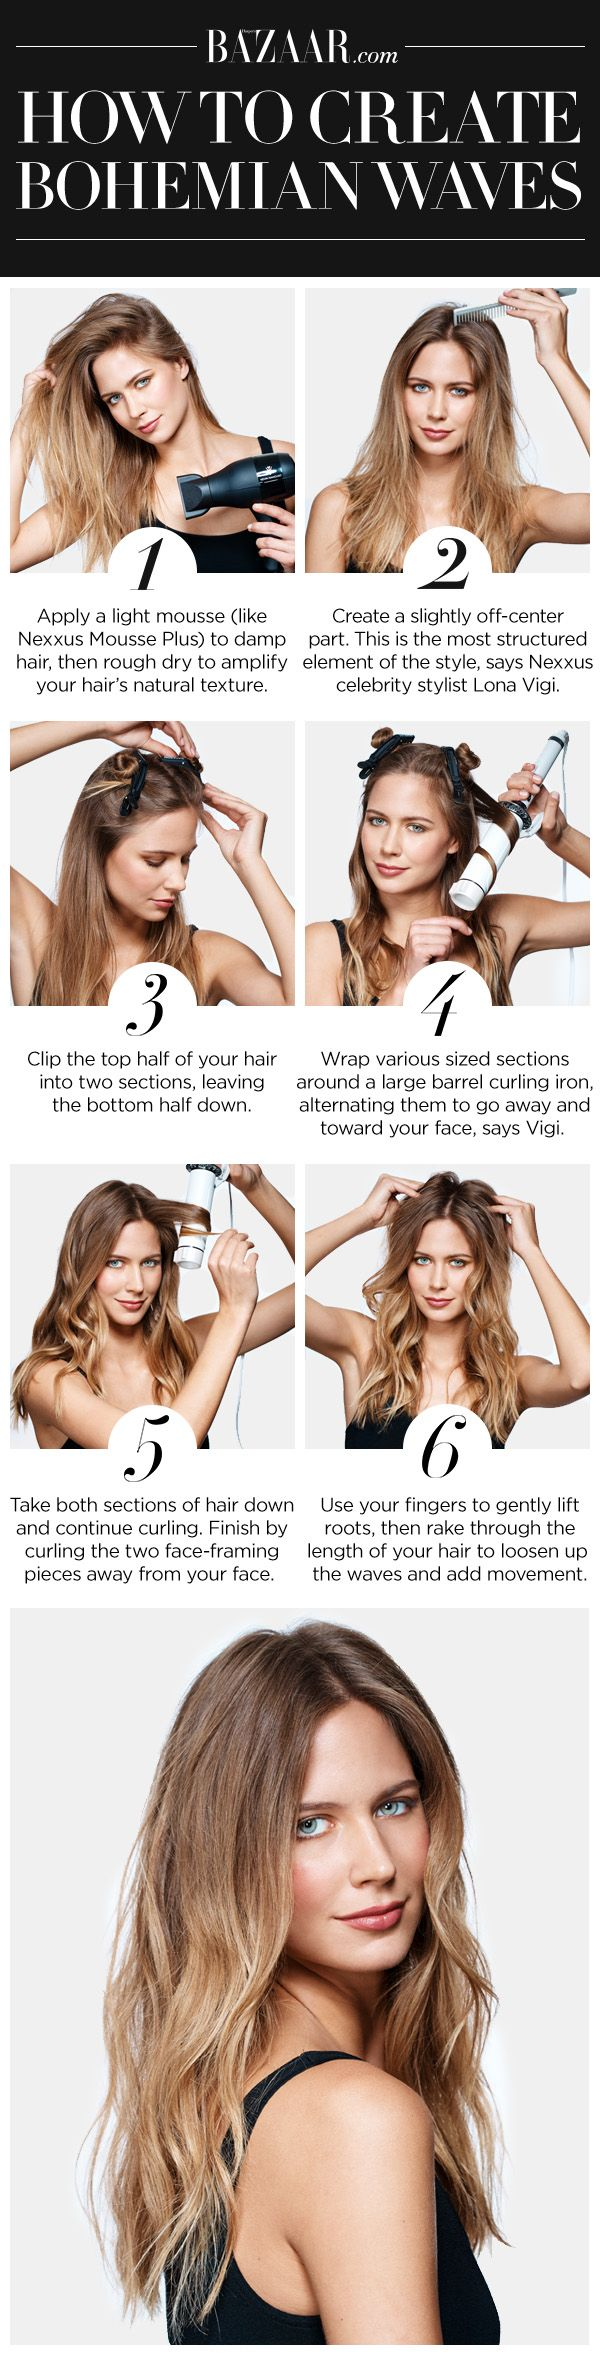 10-boho-hair-tutorial-for-the-season2